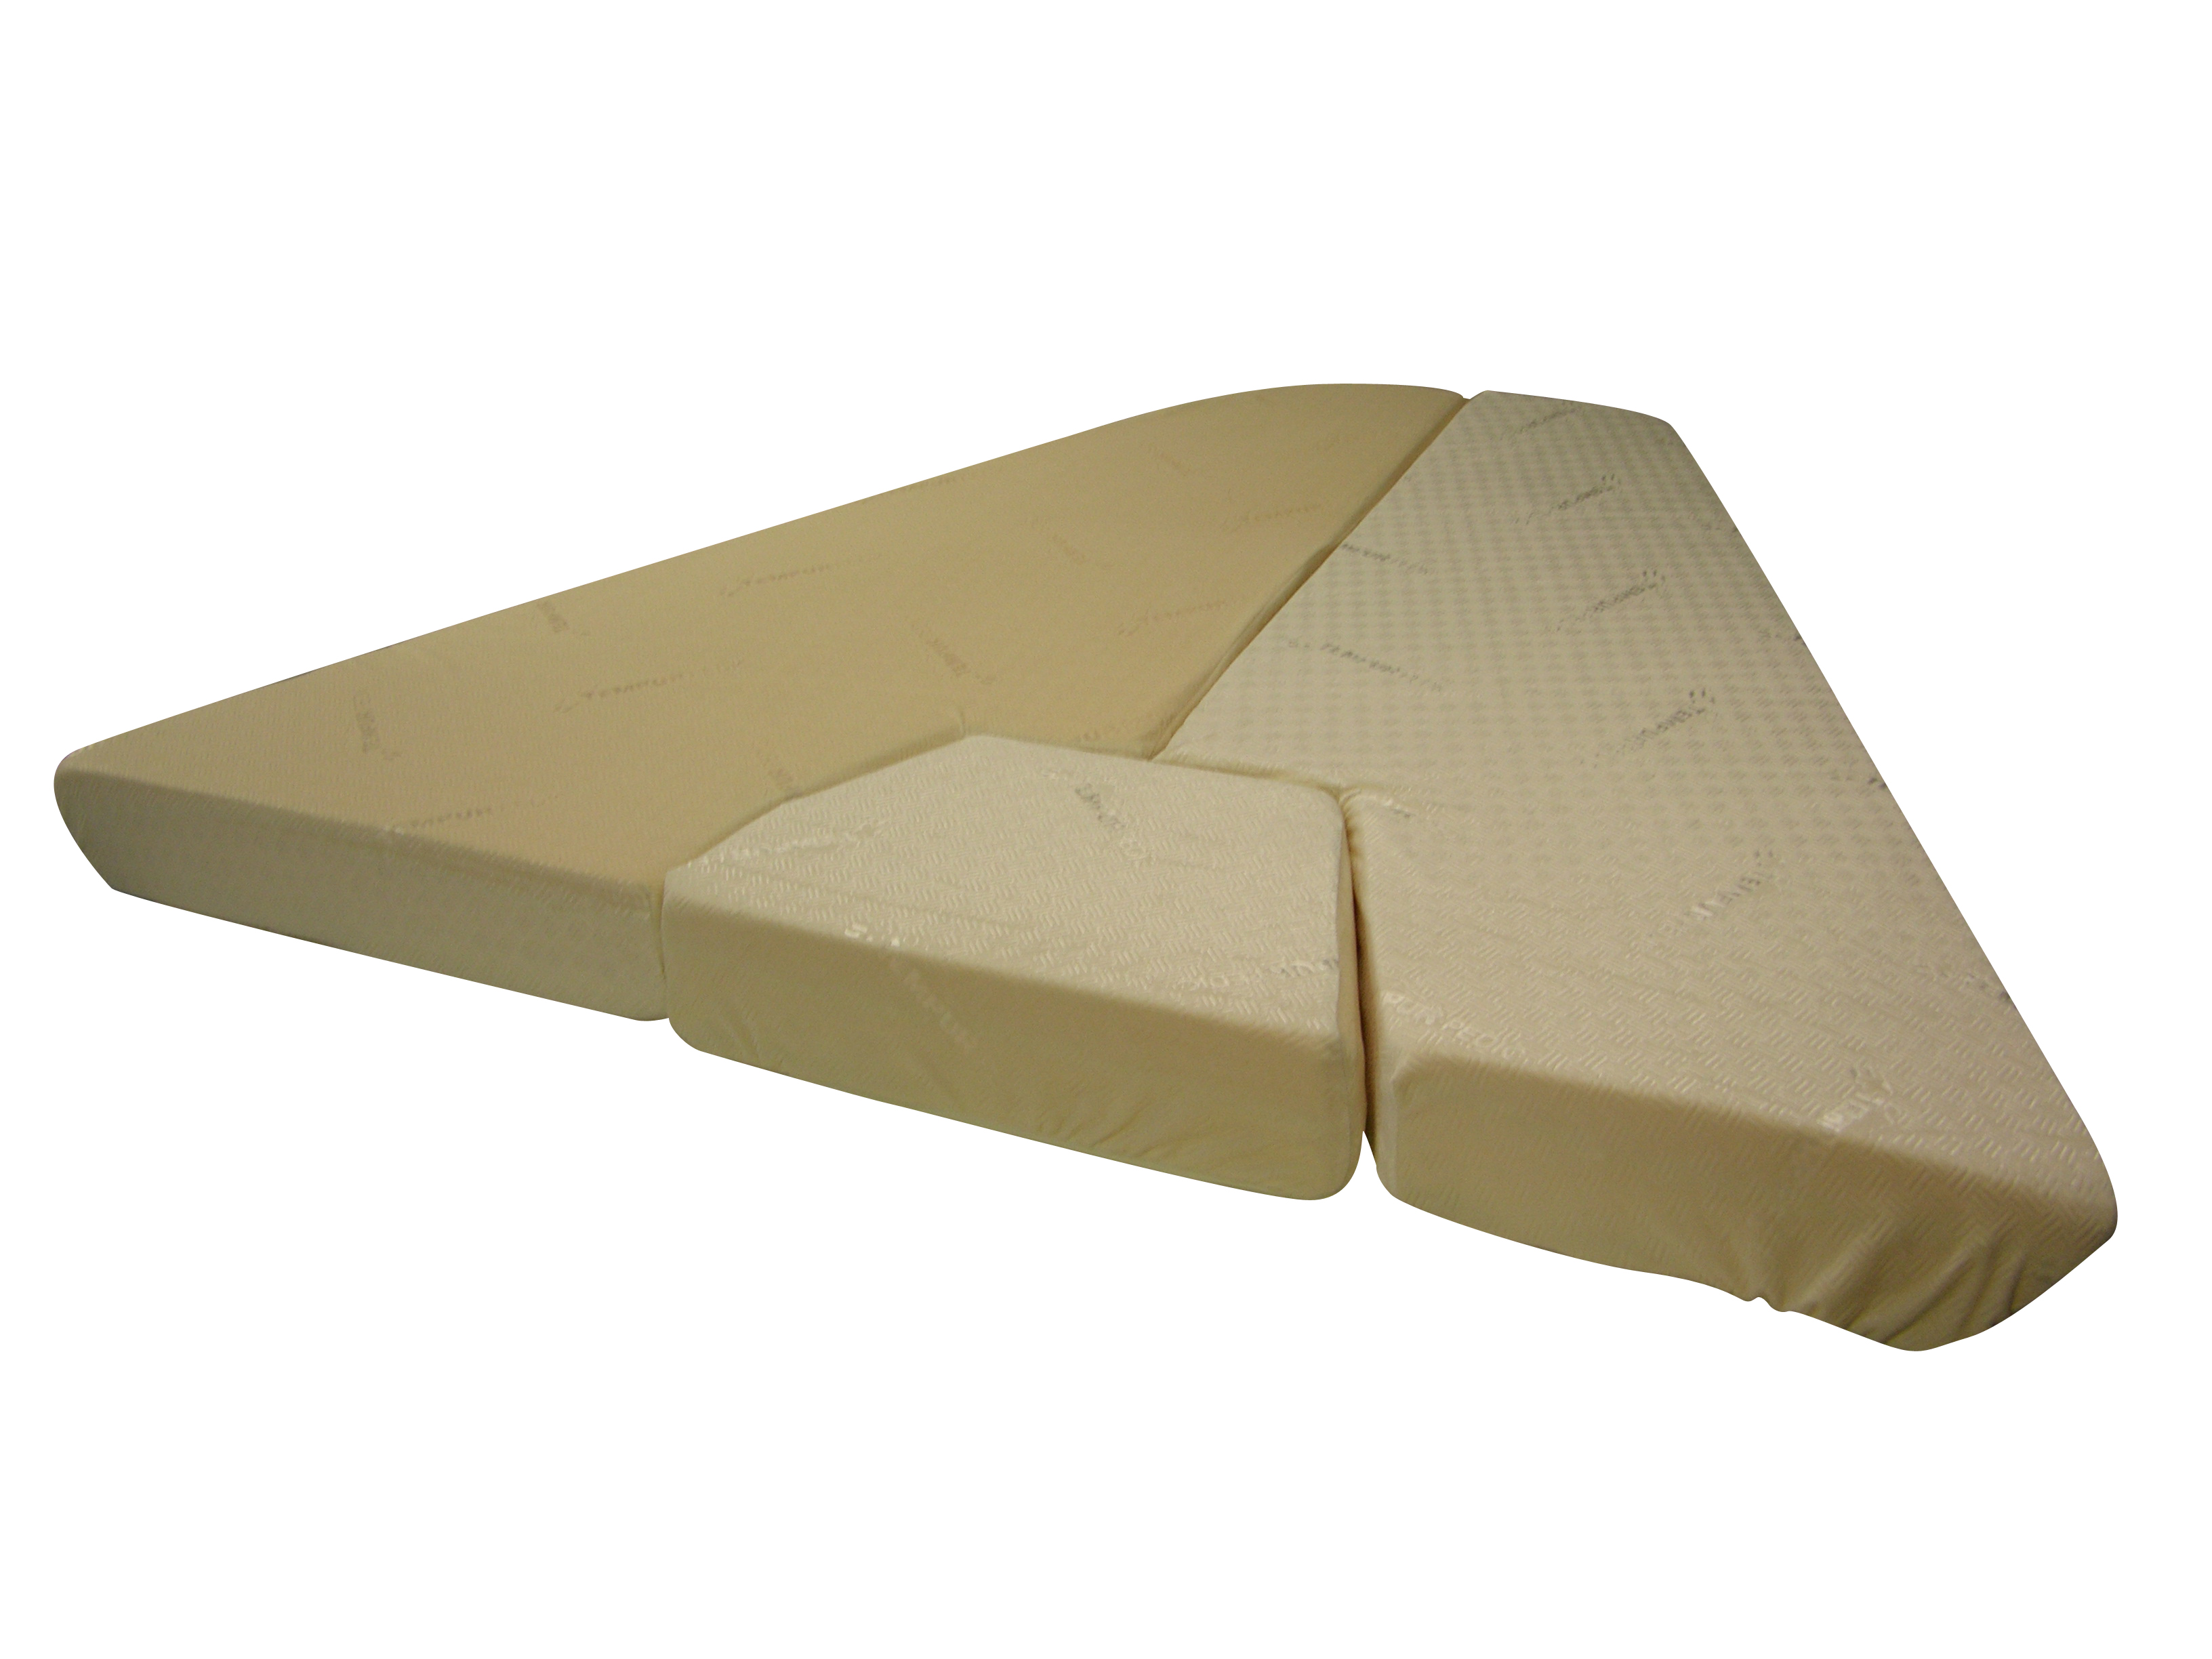 V-Berth mattress